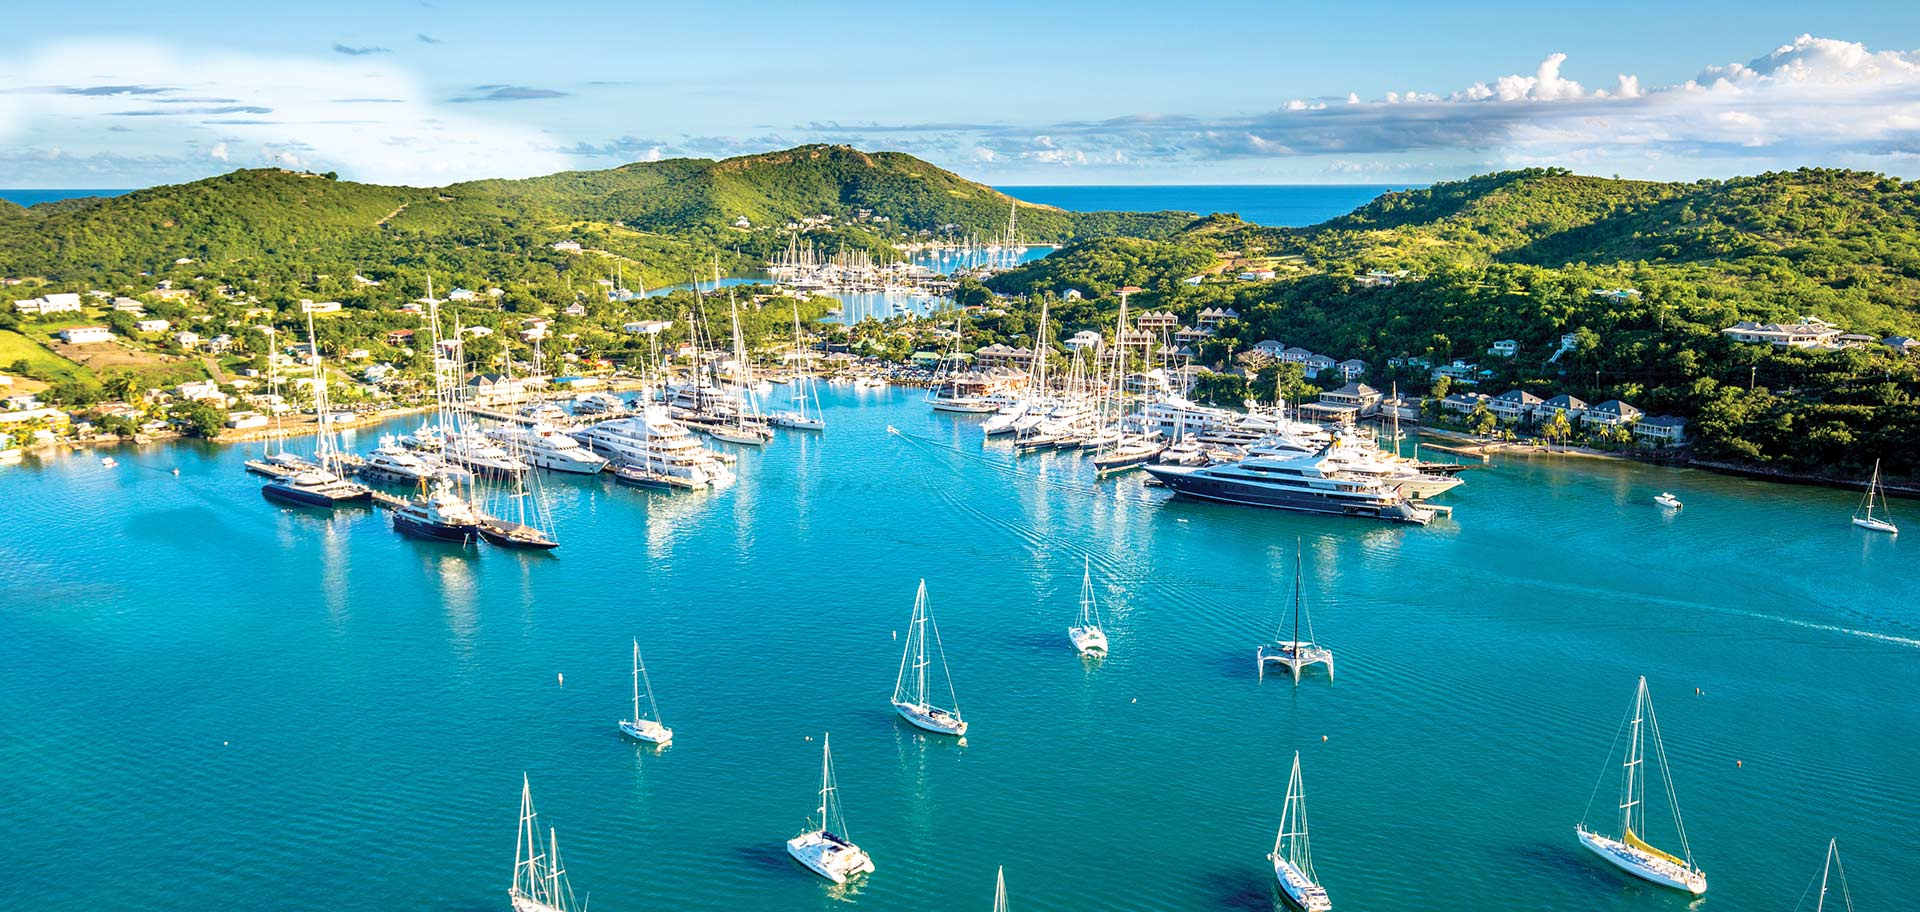 Comeback of the Caribbean: The Hottest Spots to Buy